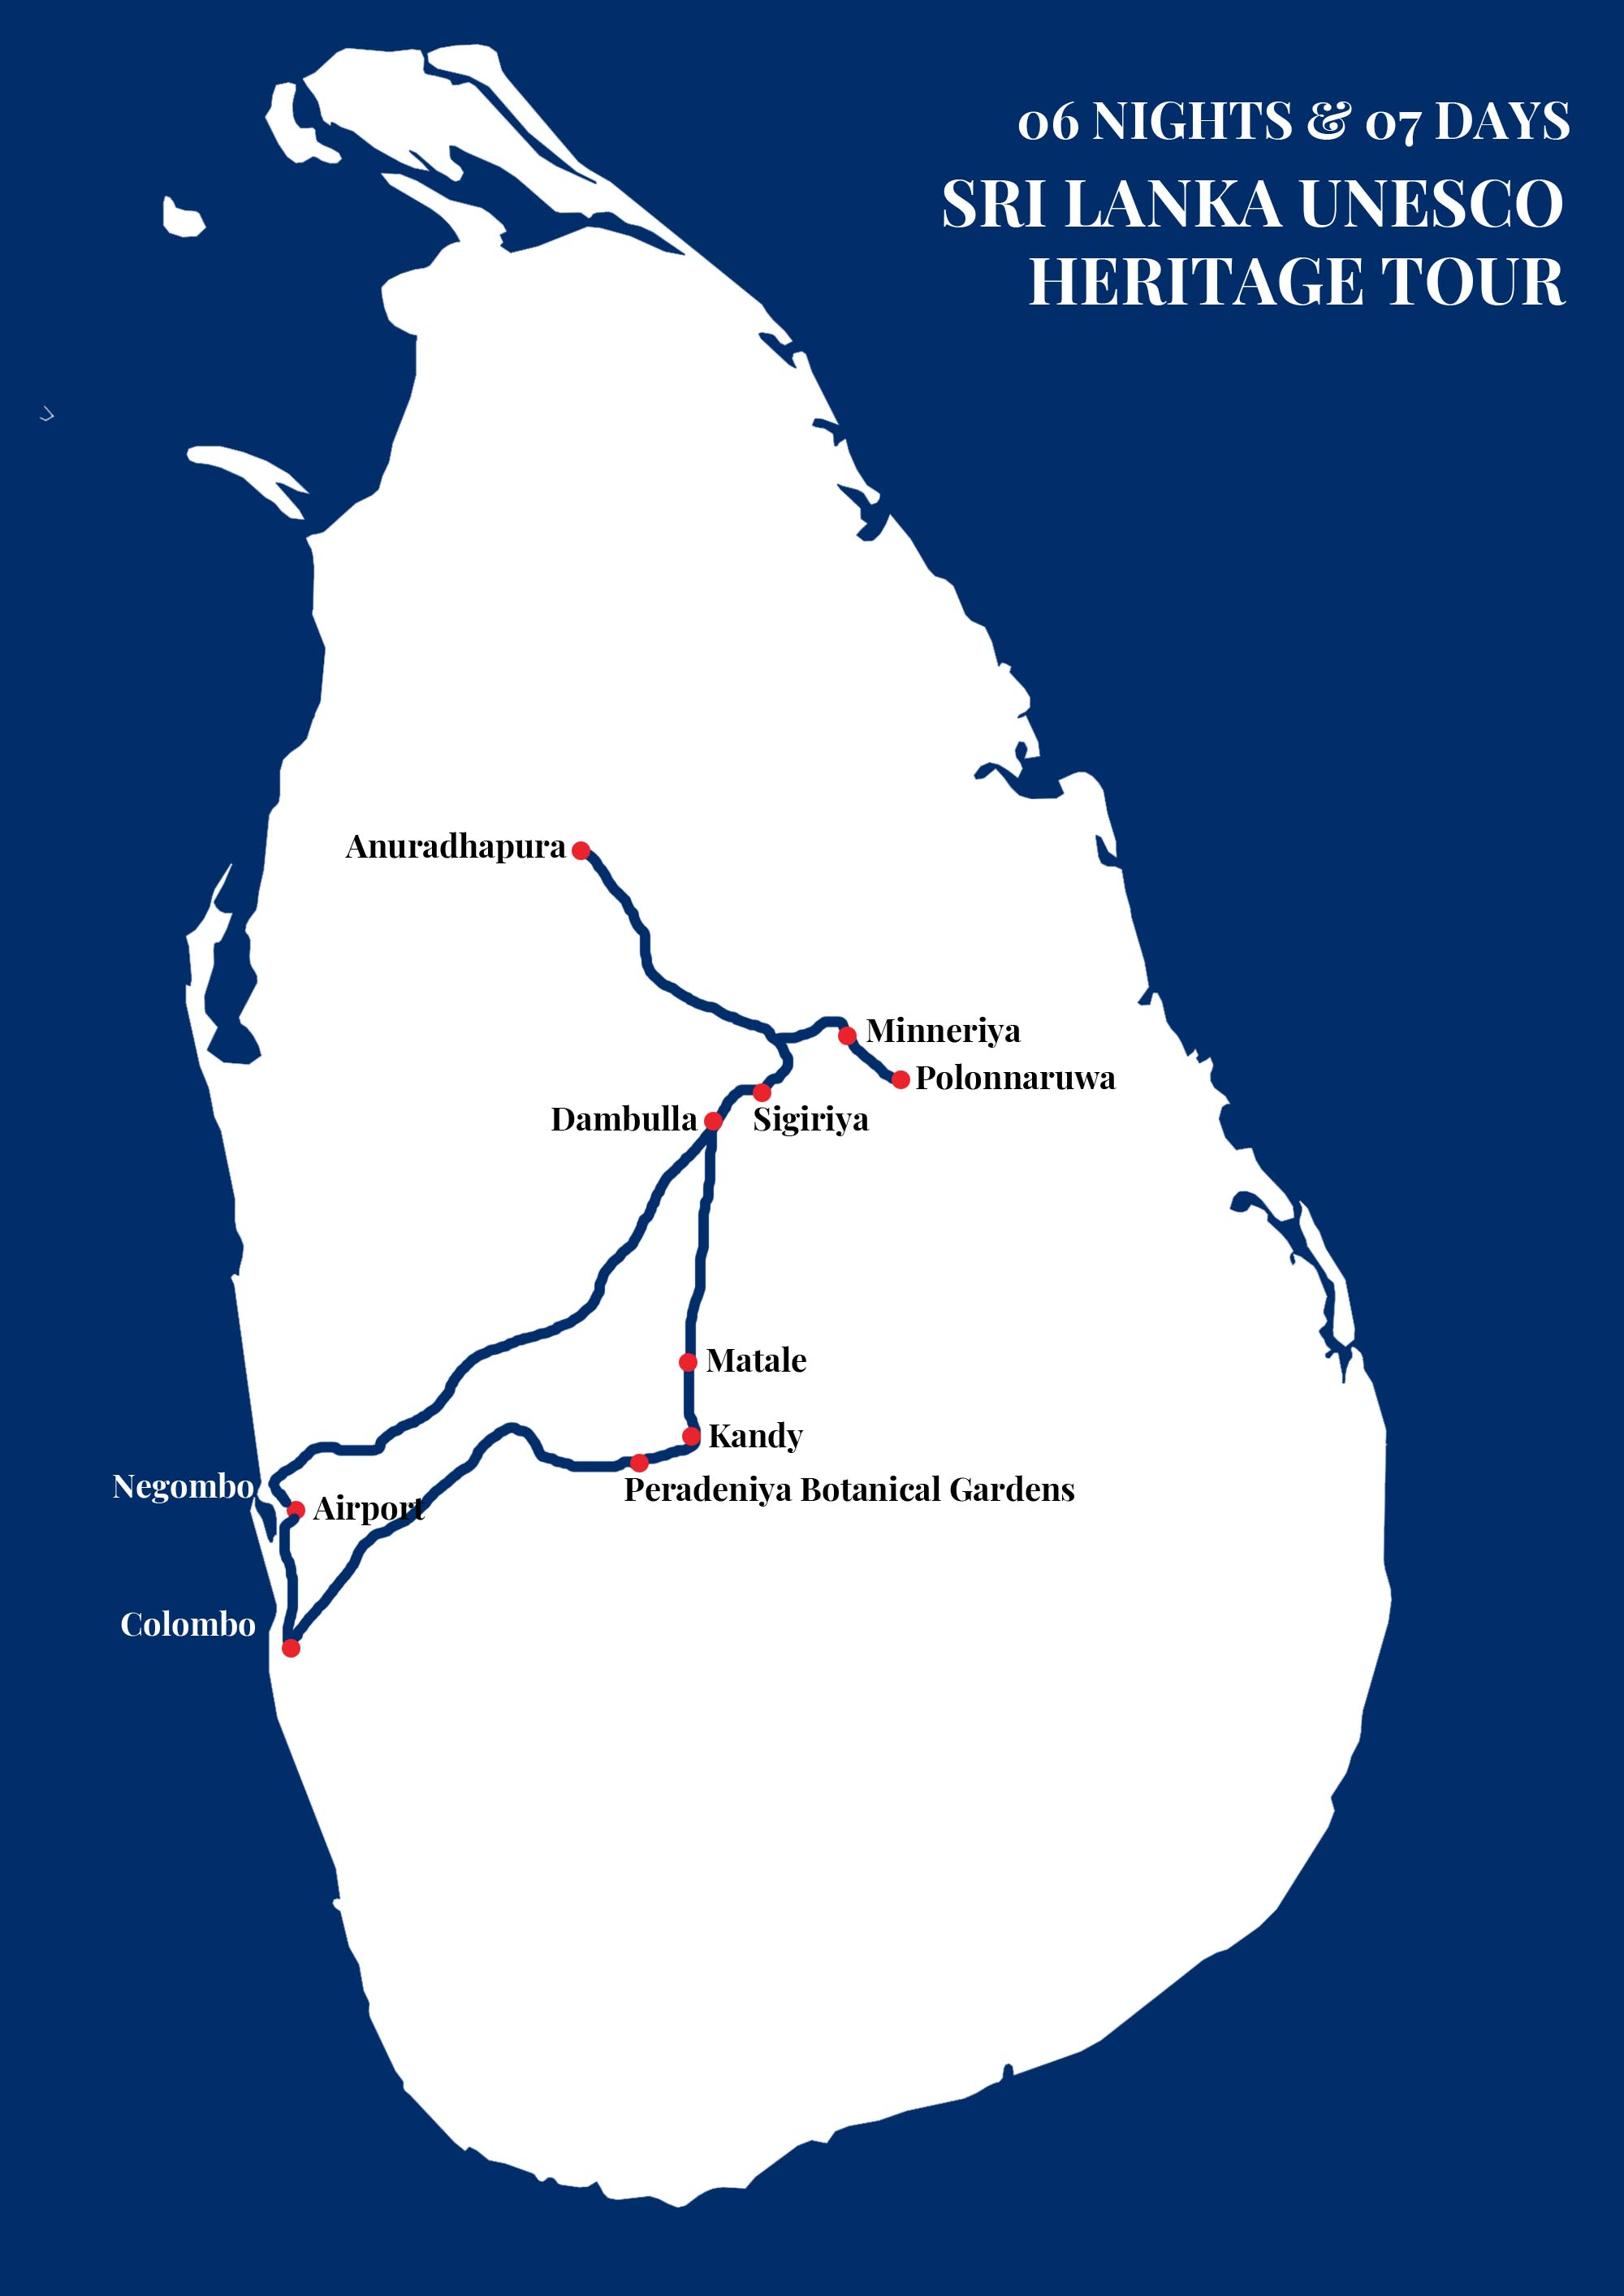 SRI LANKA UNESCO HERITAGE TOUR map